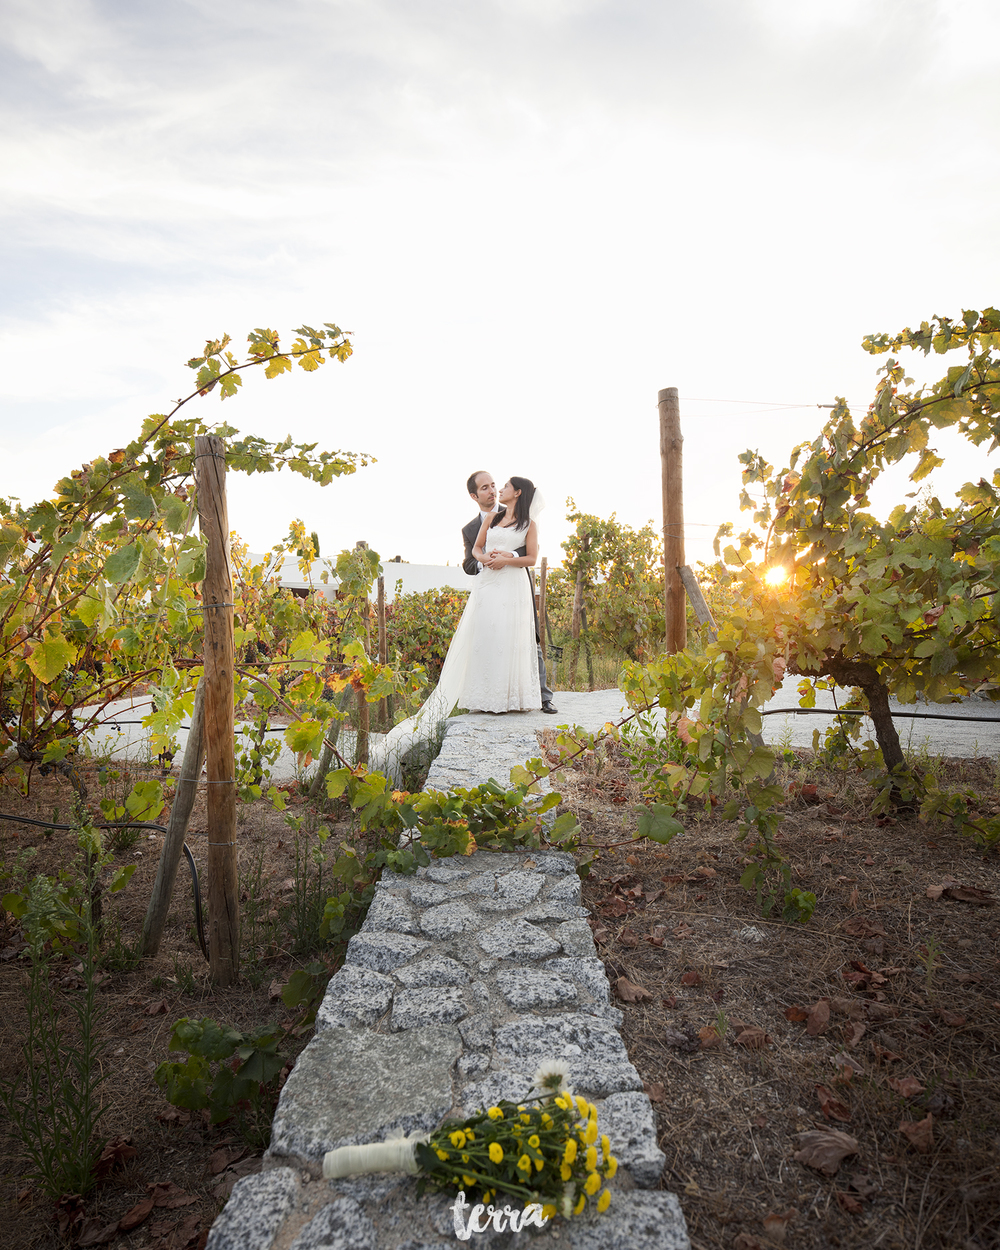 sessao-fotografica-trash-the-dress-land-vineyards-alentejo-terra-fotografia-0023.jpg